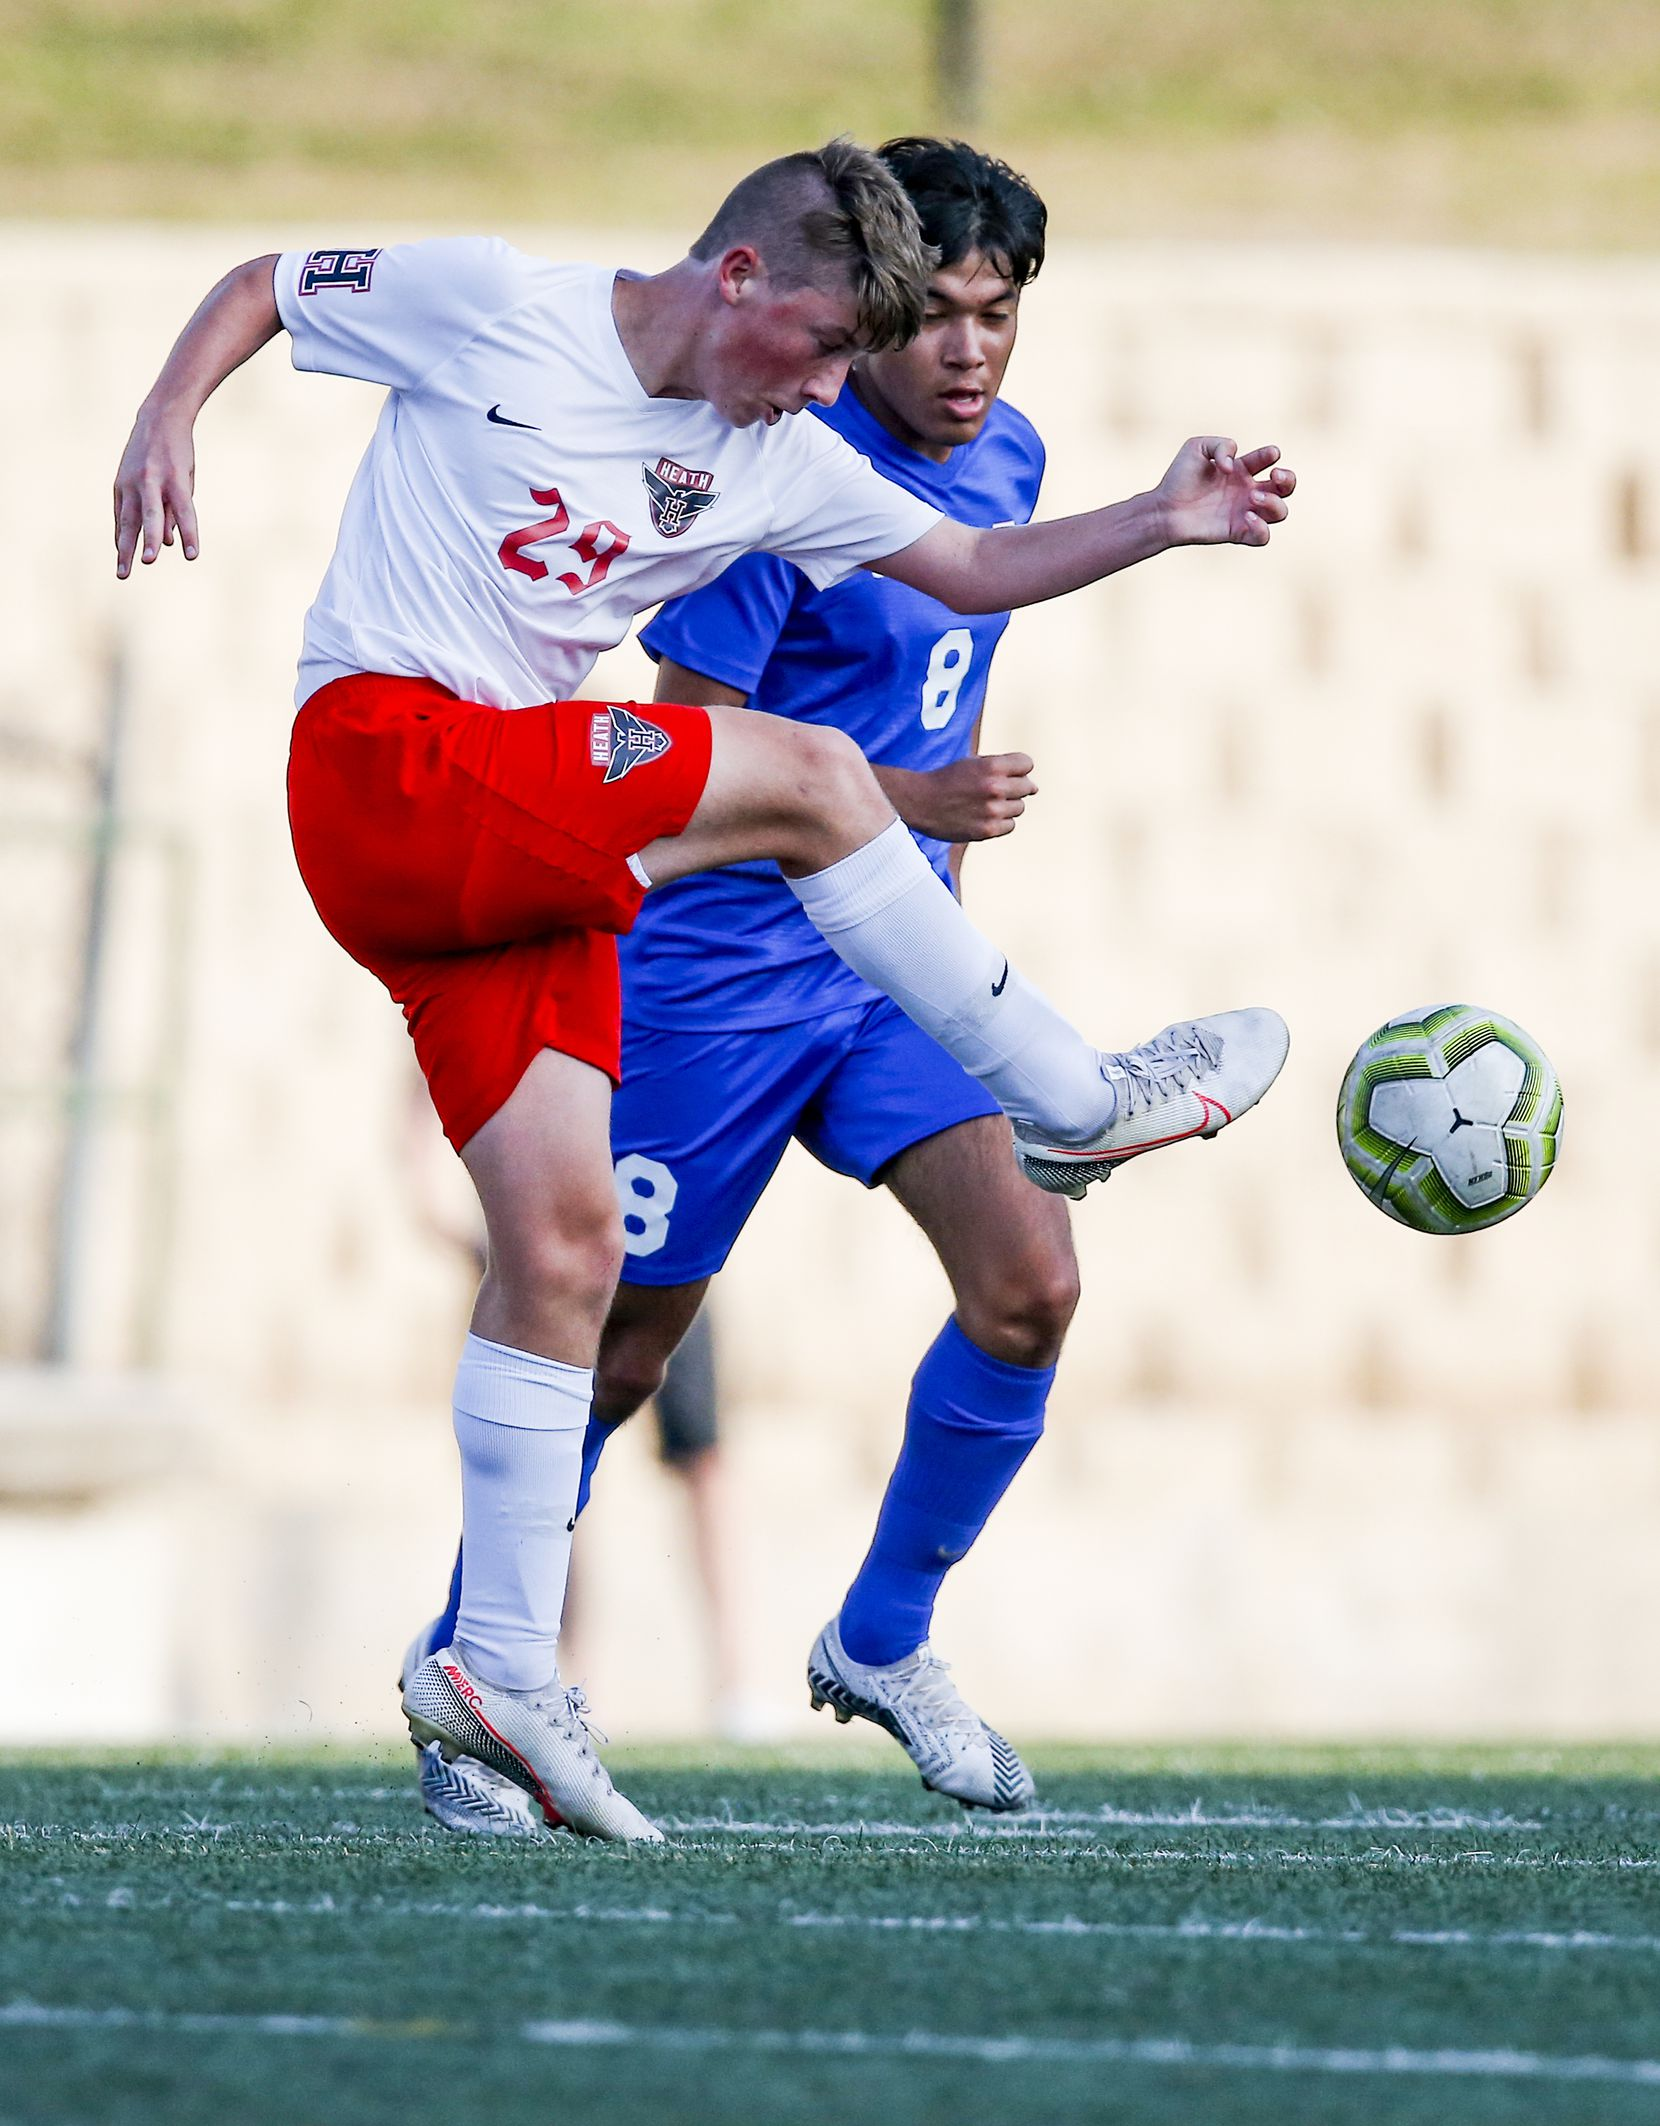 Rockwall-Heath freshman midfielder Andrew Cooley (29) and Allen senior midfielder Isaiah Moreno (8) battle for the ball during the first half of a boys soccer Class 6A state semifinal at Mesquite Memorial Stadium in Mesquite, Tuesday, April 13, 2021. (Brandon Wade/Special Contributor)